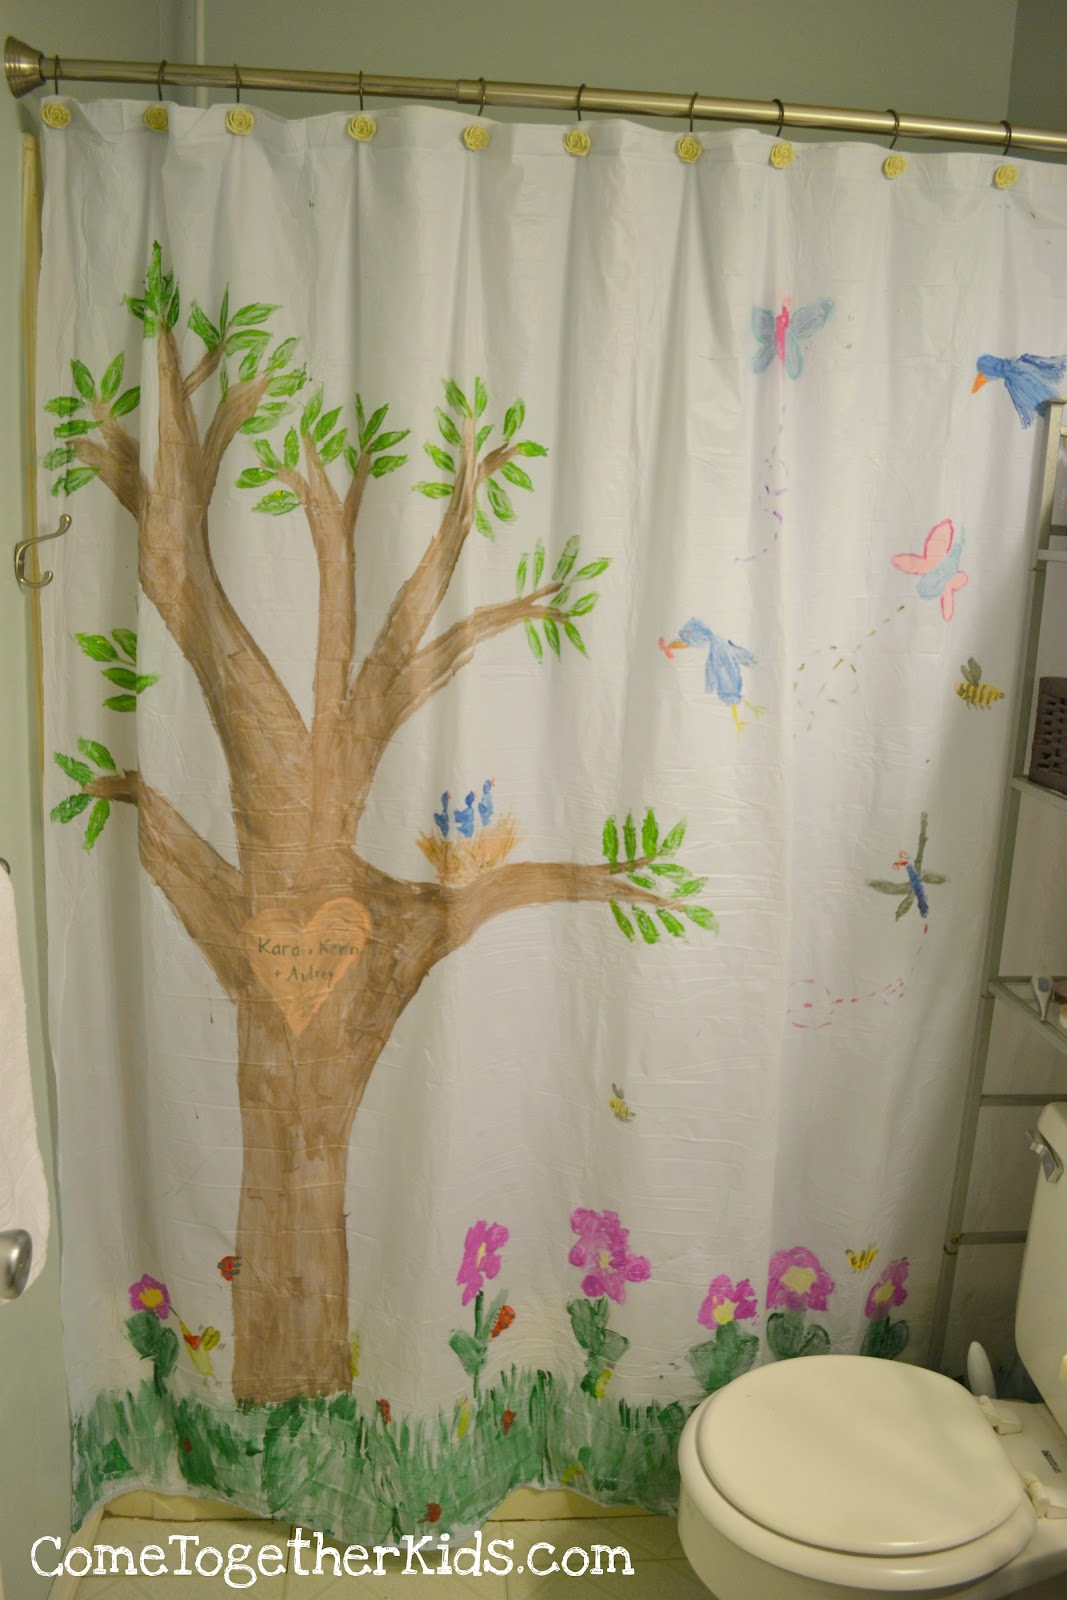 Come Together Kids Paint A Shower Curtain Mural